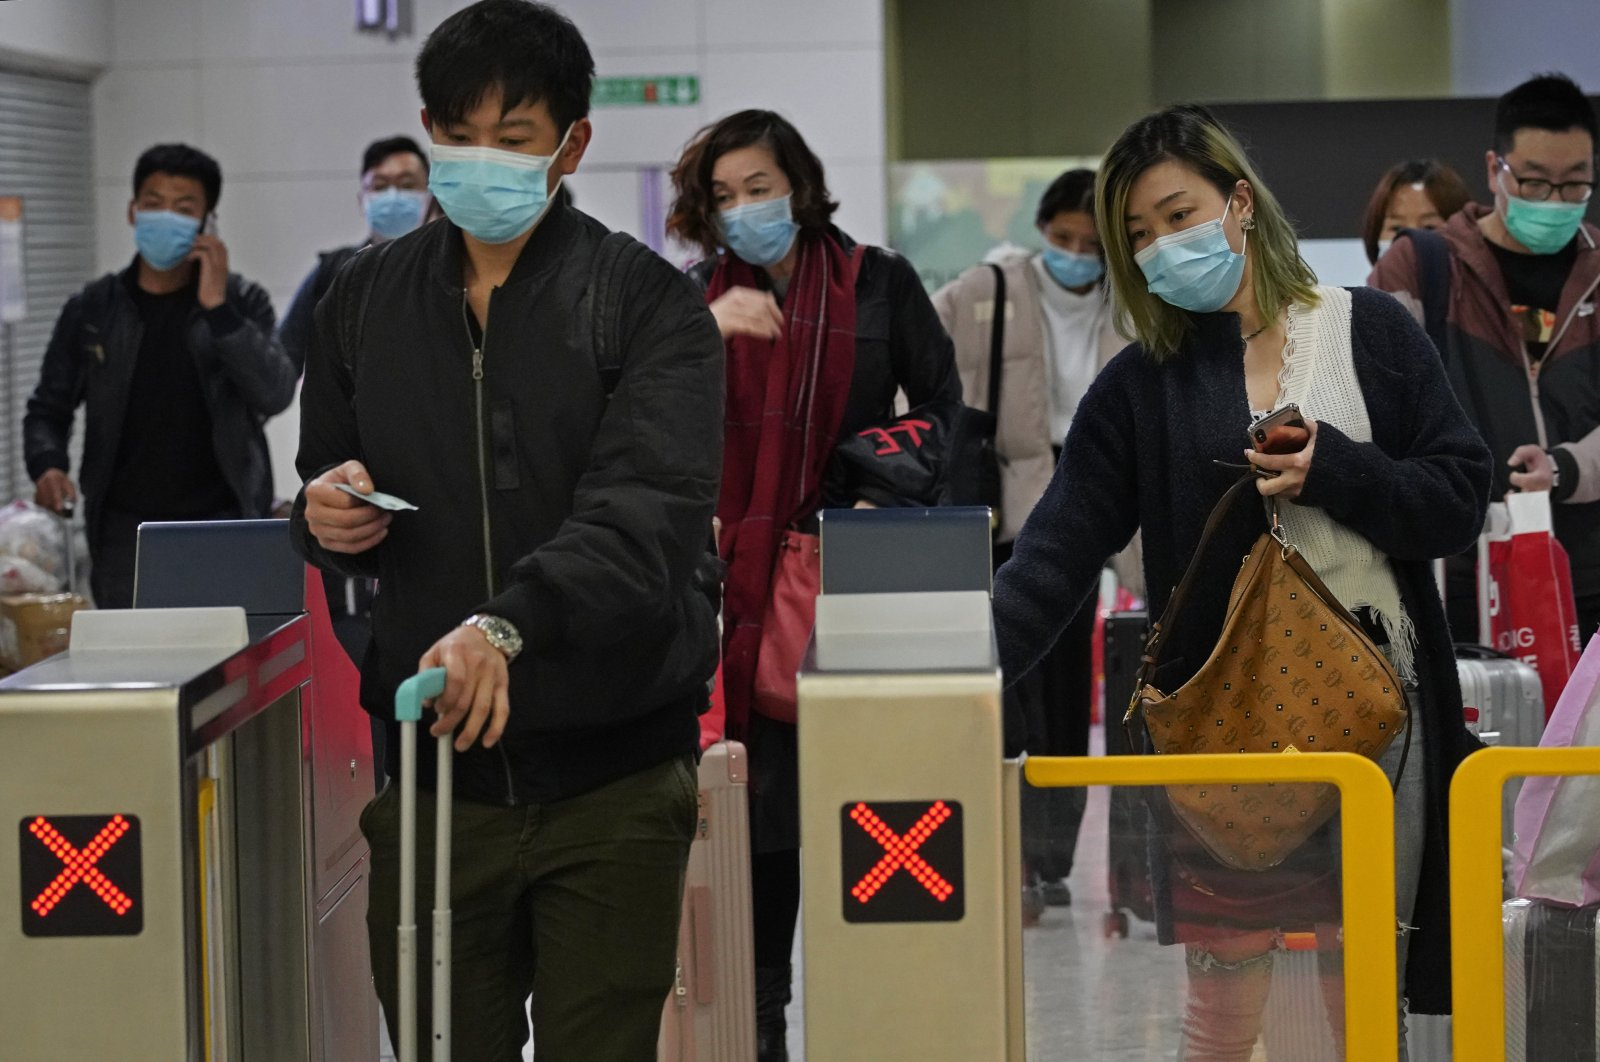 Passengers wearing protective face masks arrive at a high speed train station in Hong Kong, Jan. 28, 2020. (AP Photo)